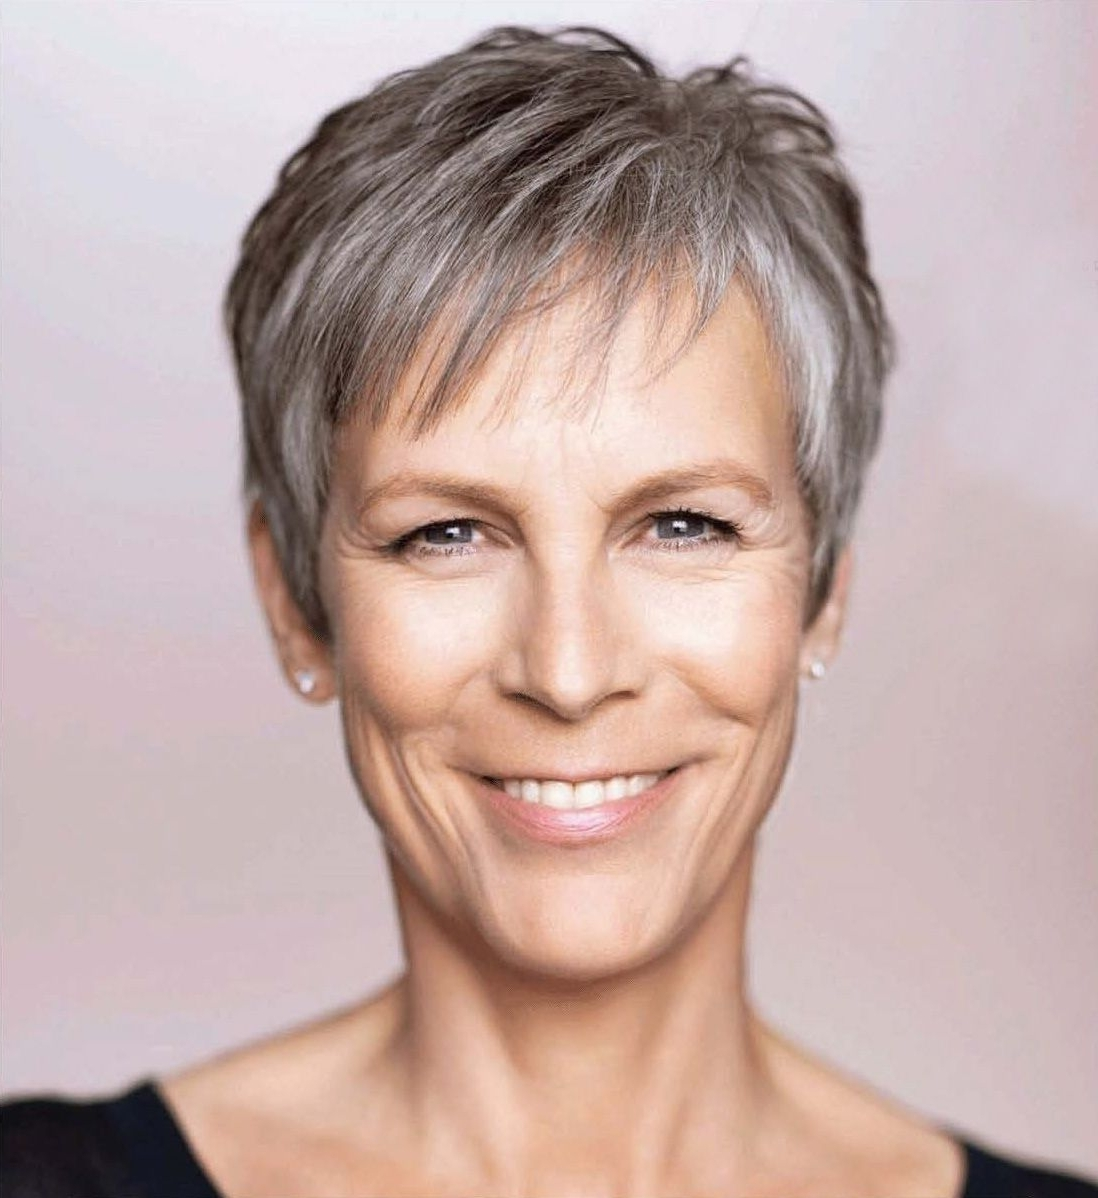 Jamie Lee Curtis Haircut Back View | Jamie Lee Curtis Hairstyle Inside Recent Imperfect Pixie Haircuts (View 9 of 15)